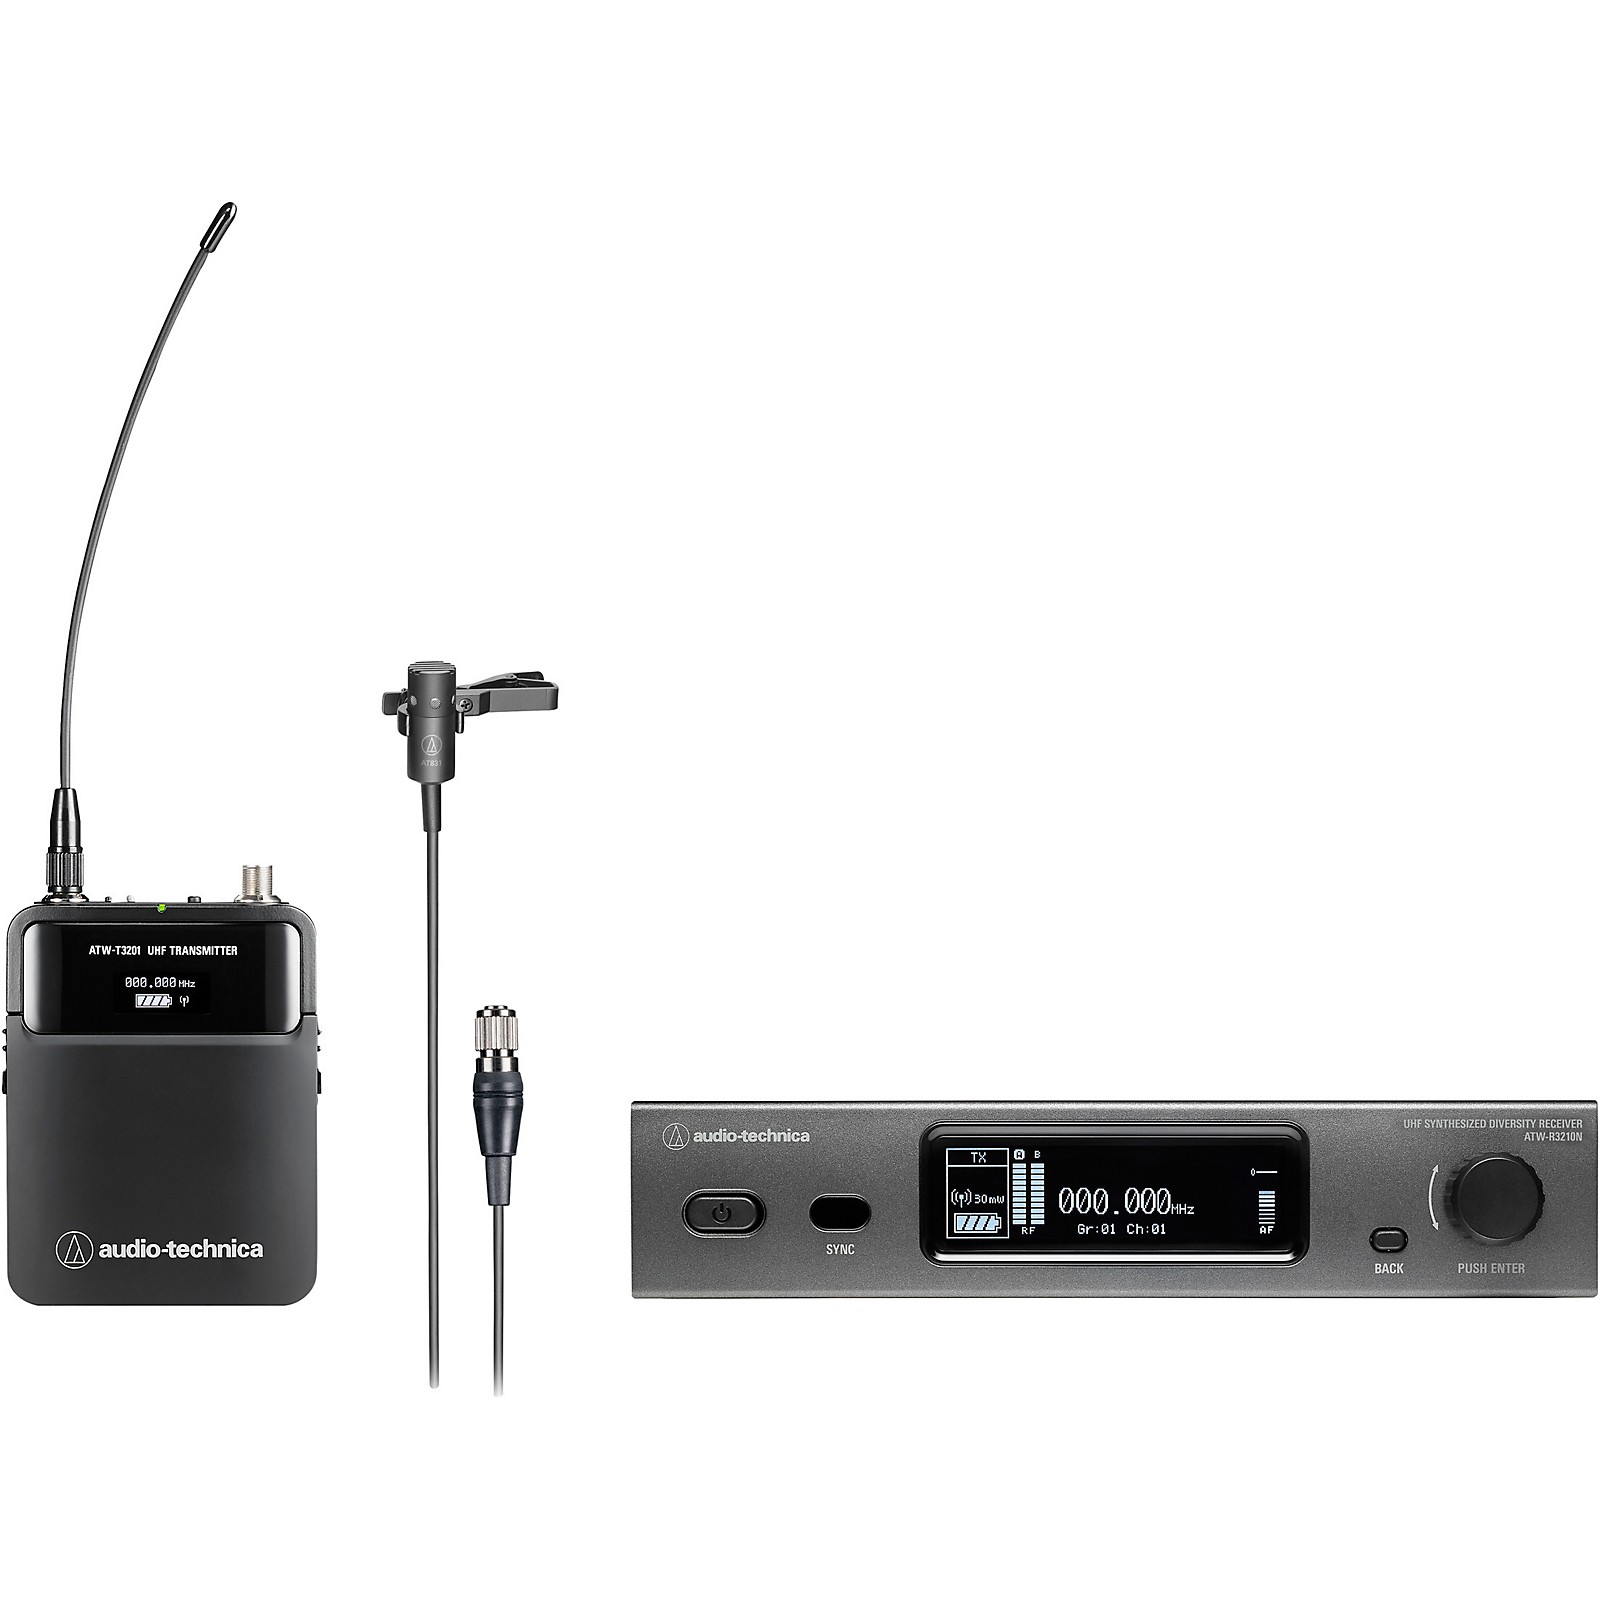 Audio-Technica 3000 Series  (4th Gen)  Network Enabled UHF Wireless with AT831cH Cardioid Condenser Lavalier Microphone